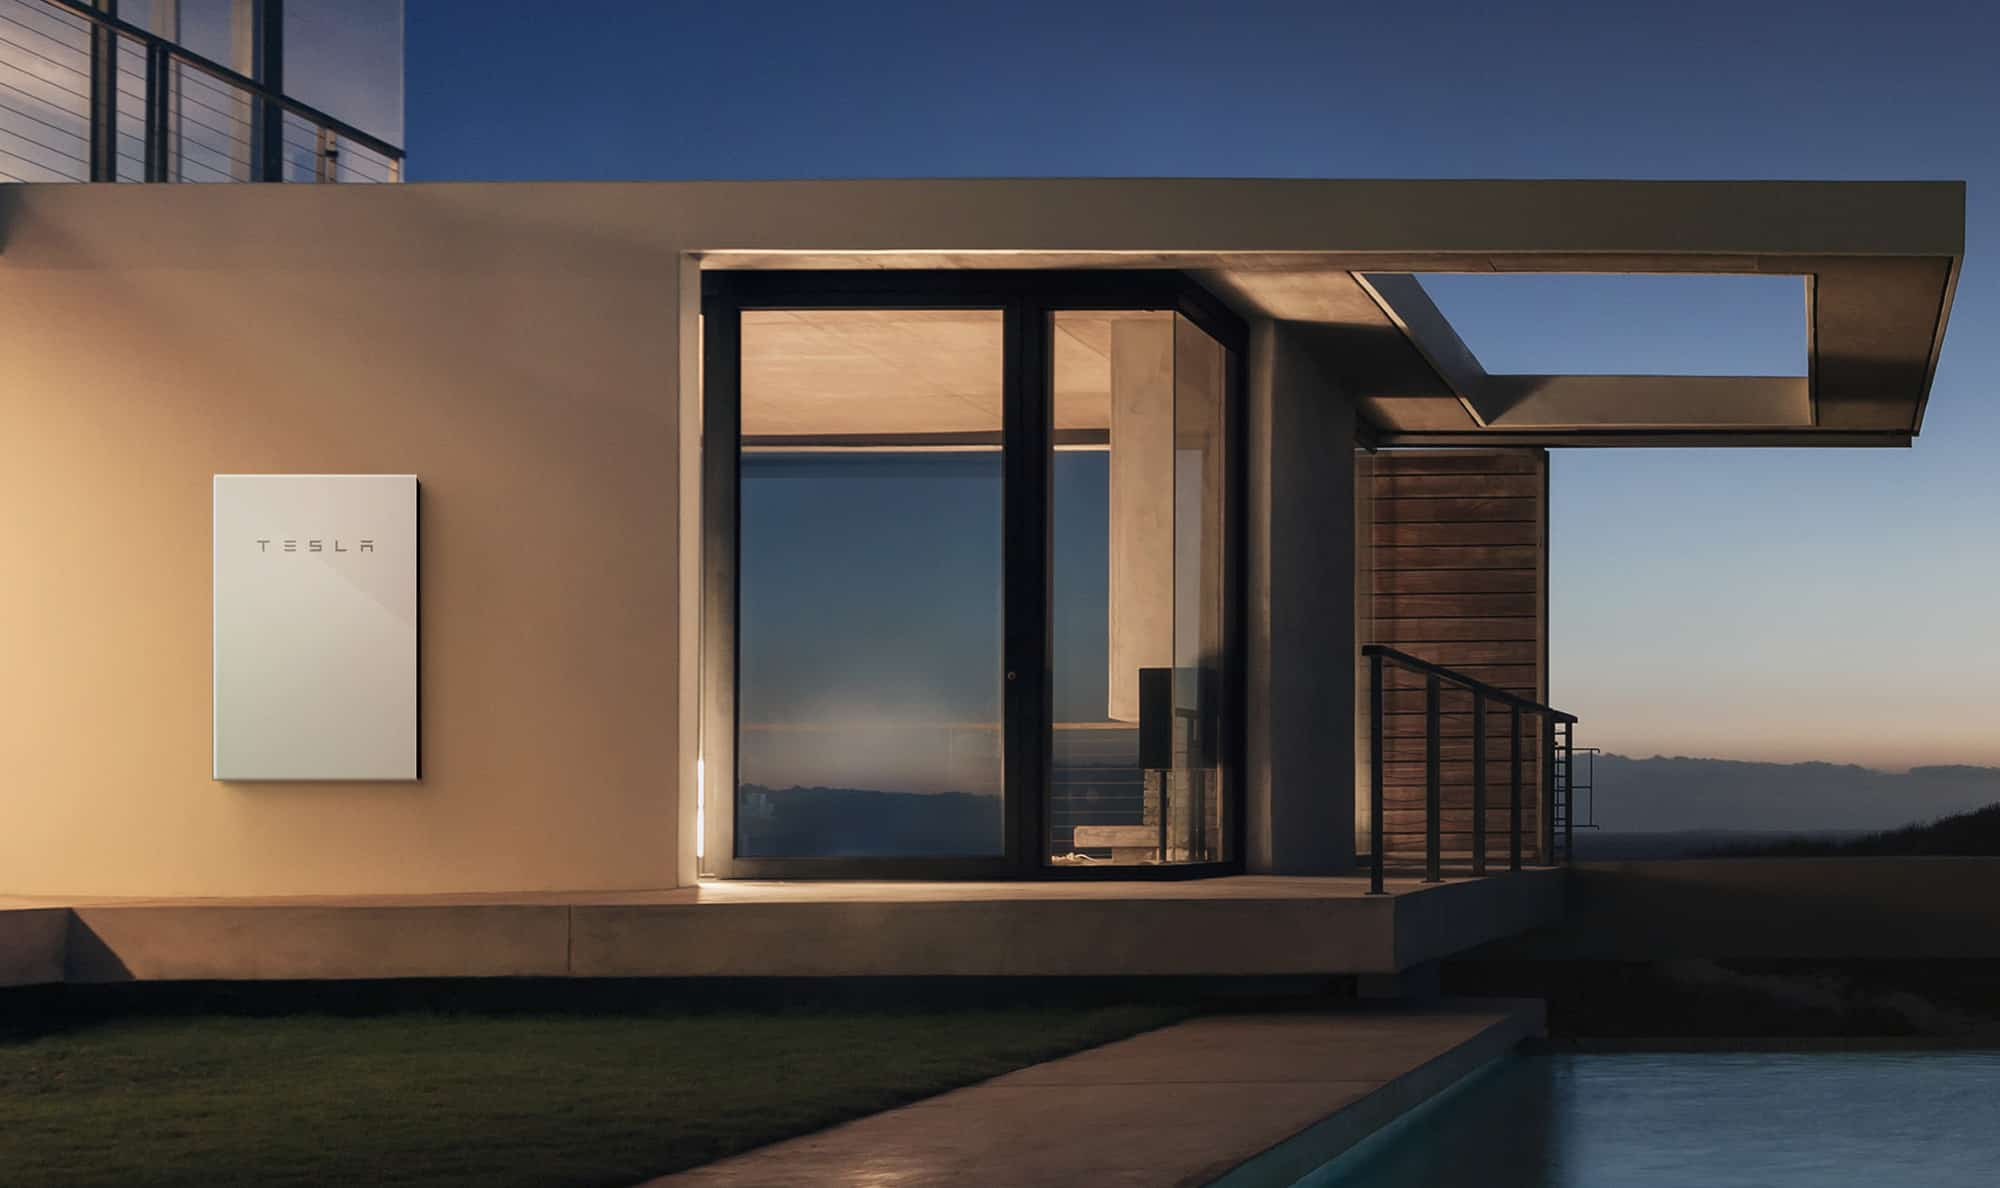 Tesla Powerwall 2 house